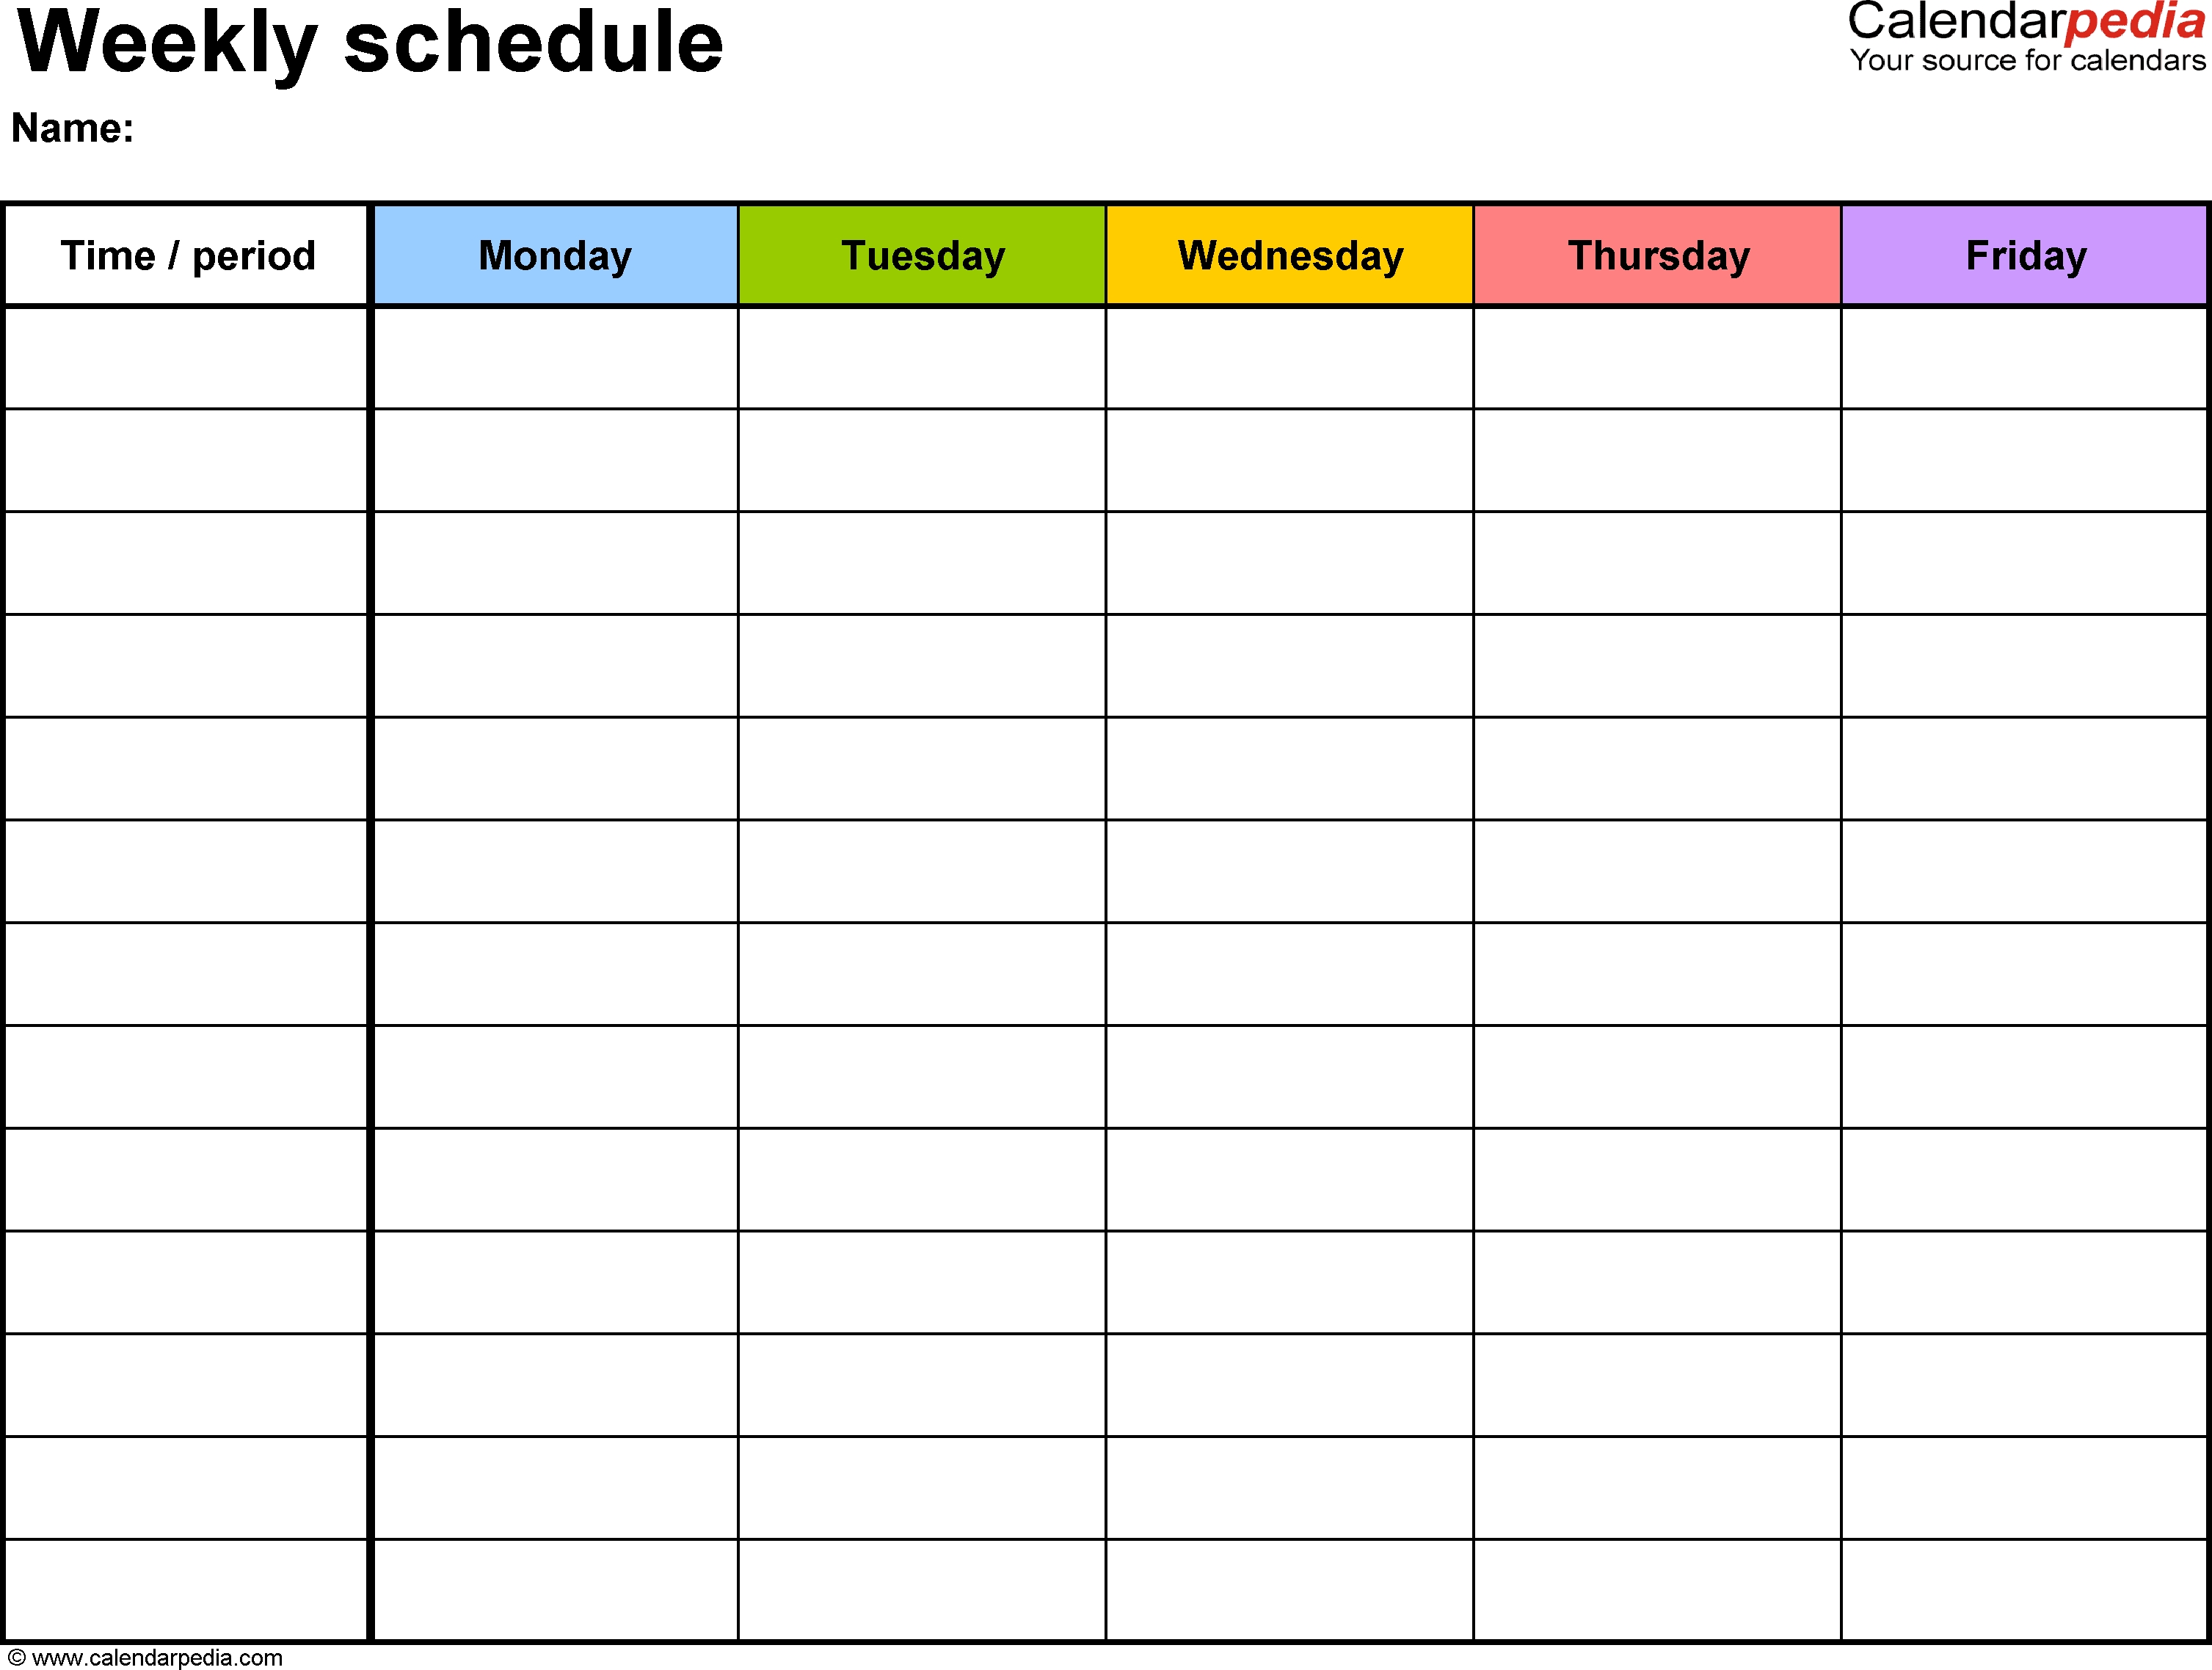 Free Weekly Schedule Templates For Word - 18 Templates throughout 5 Day Monthly Calendar Printable